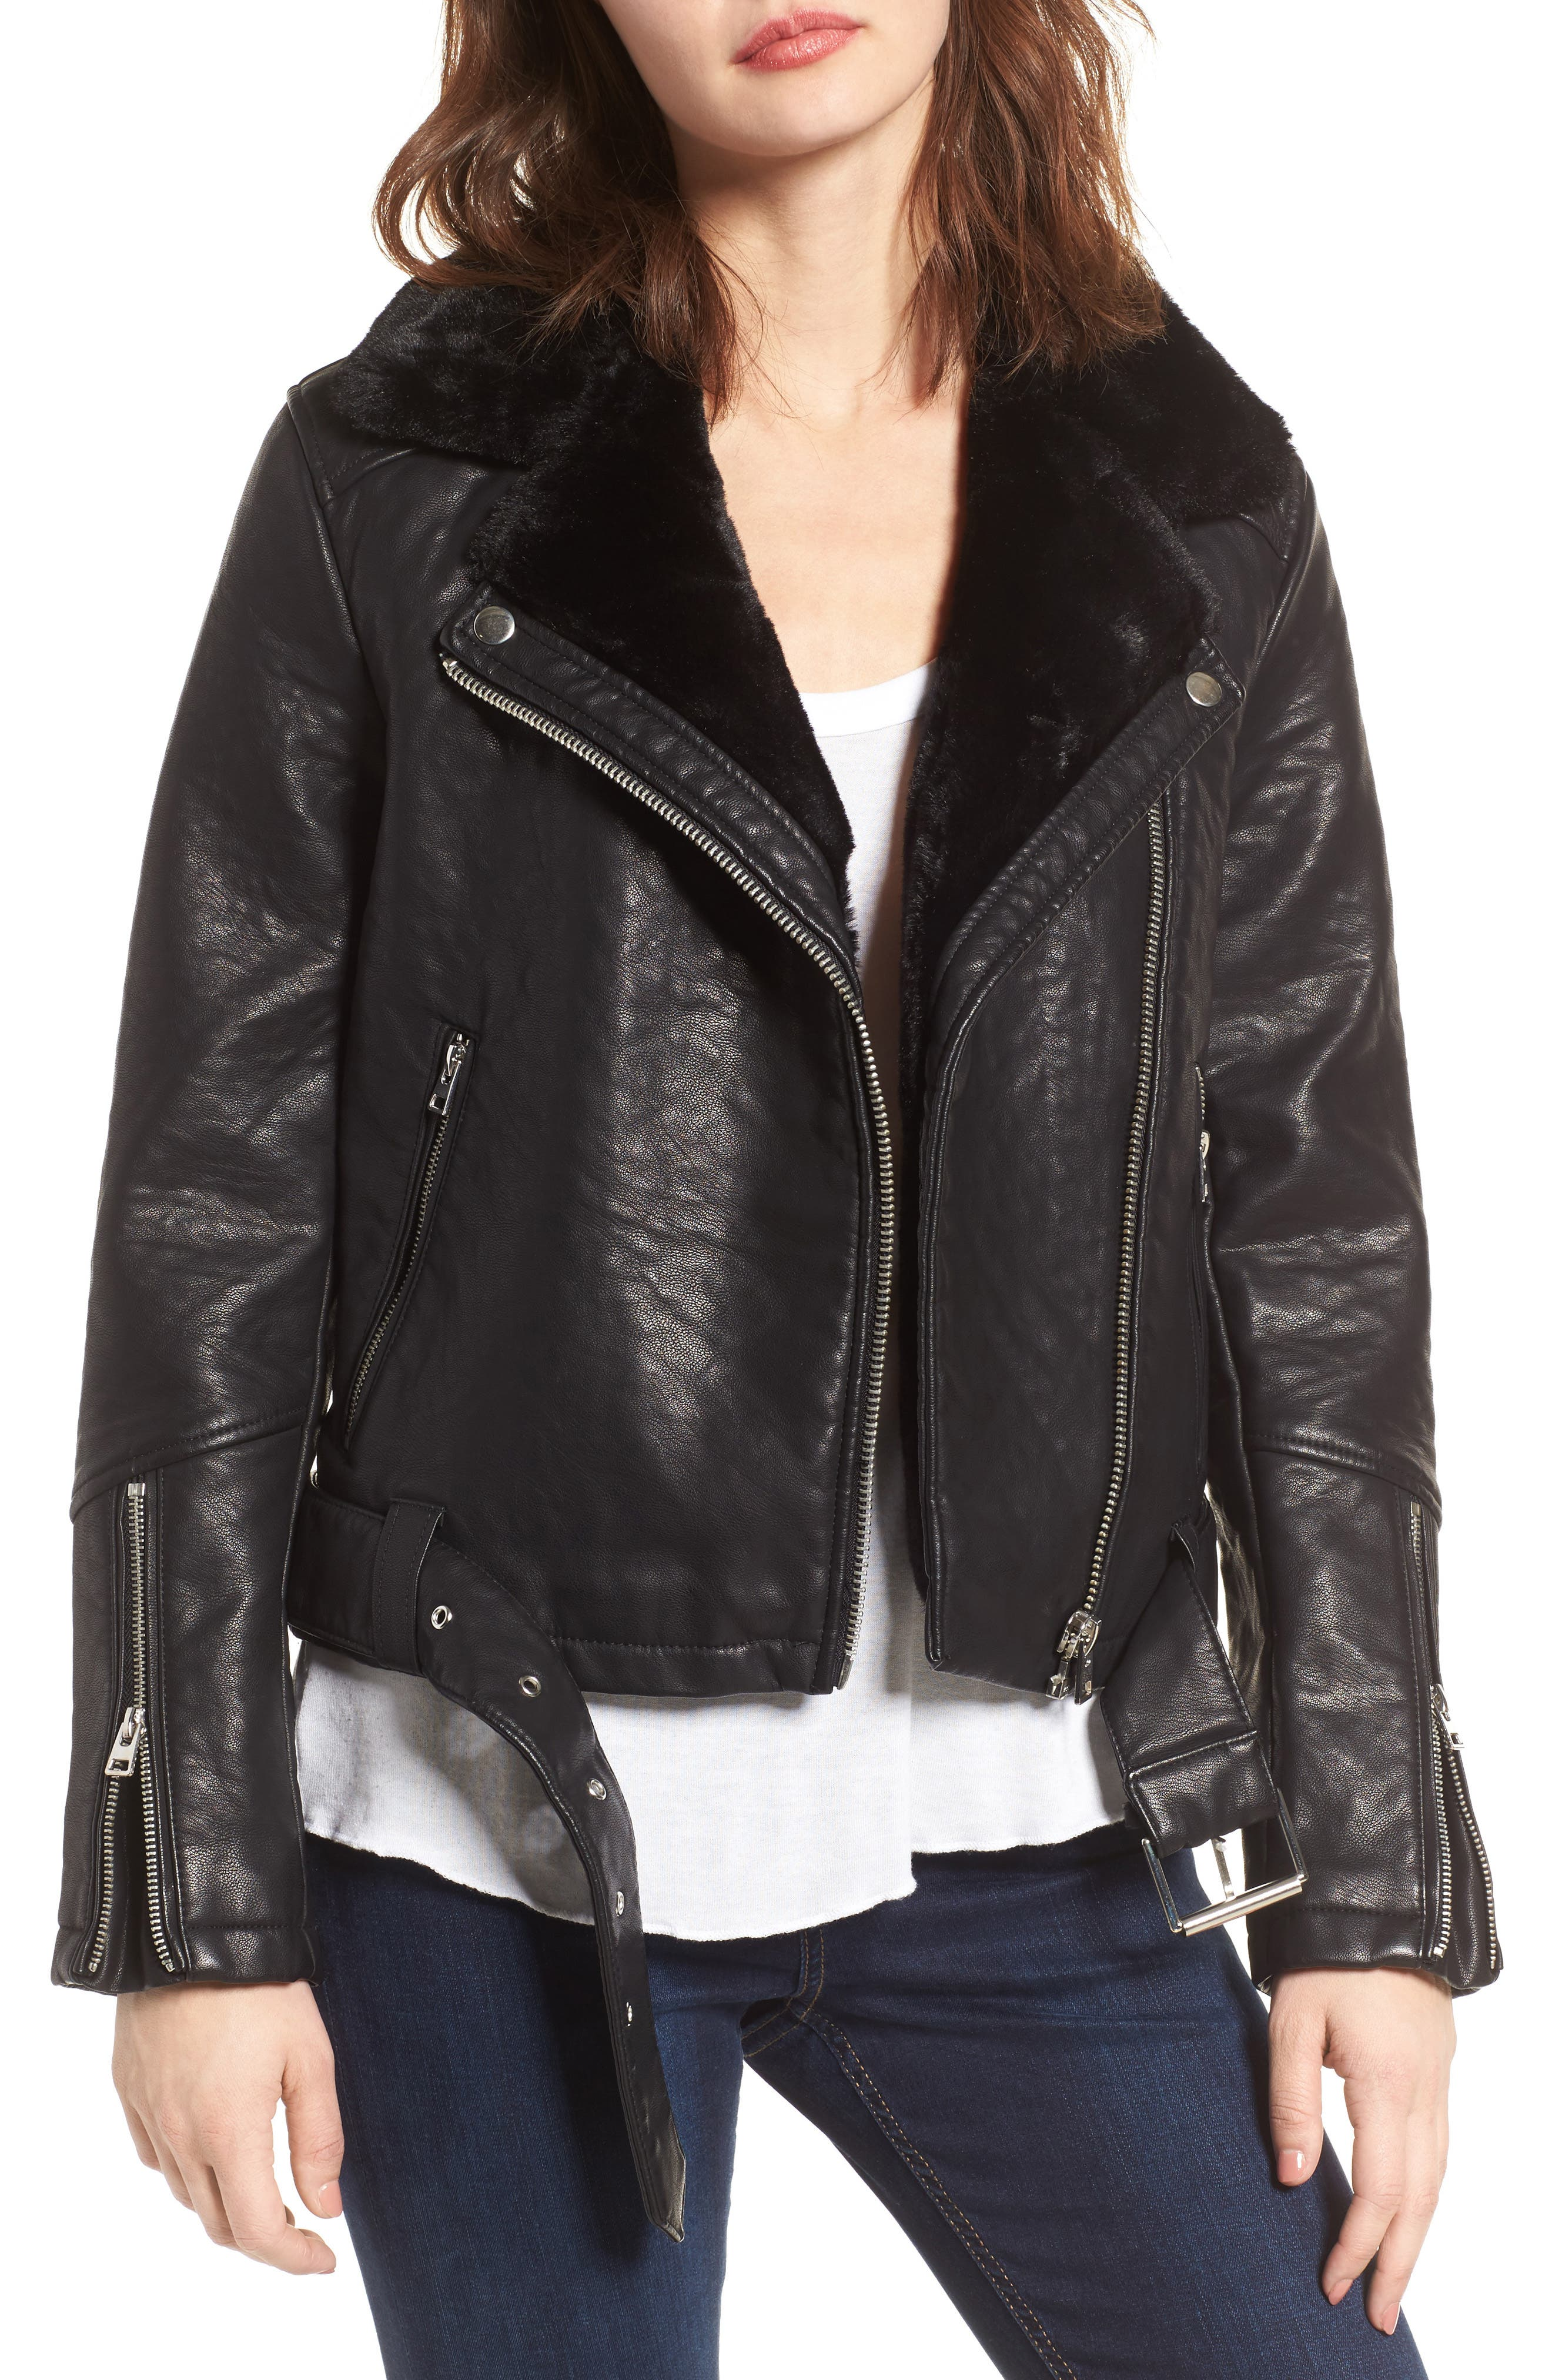 Alternate Image 1 Selected - Topshop Vardy Faux Leather Biker Jacket